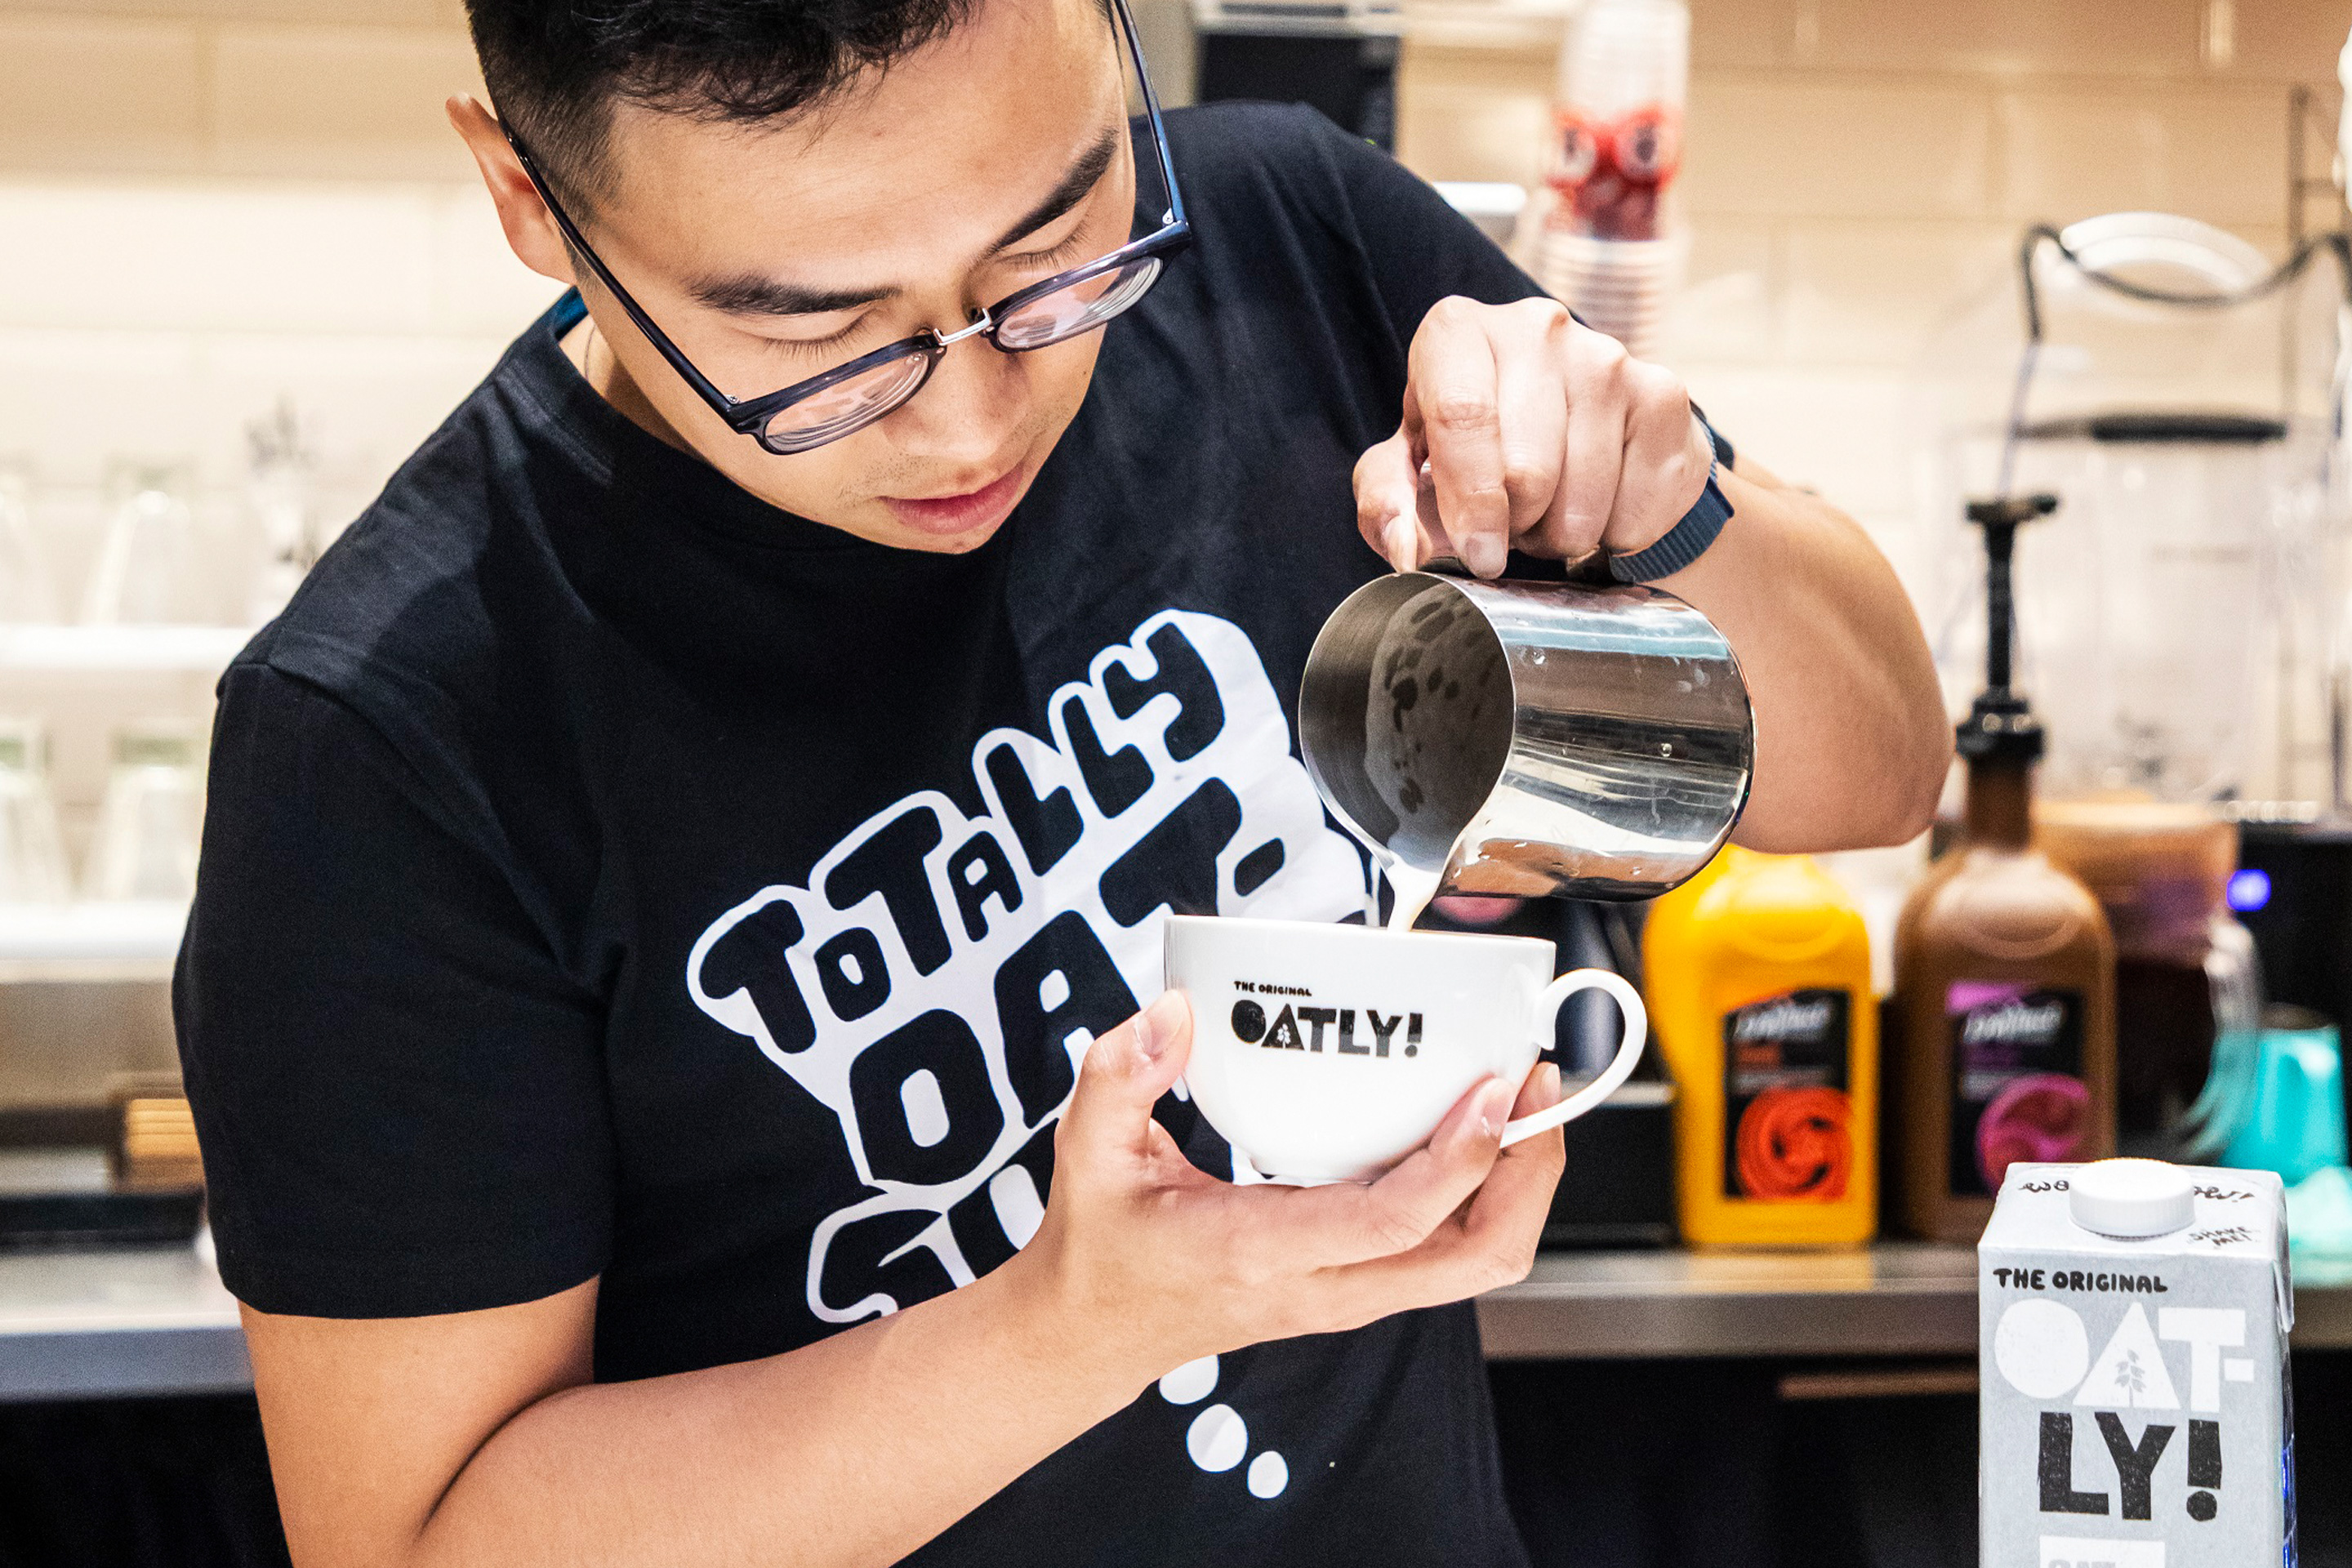 A barista in a Hong Kong coffee shop uses Oatly to craft latte foam. Photo: Courtesy of Oatly